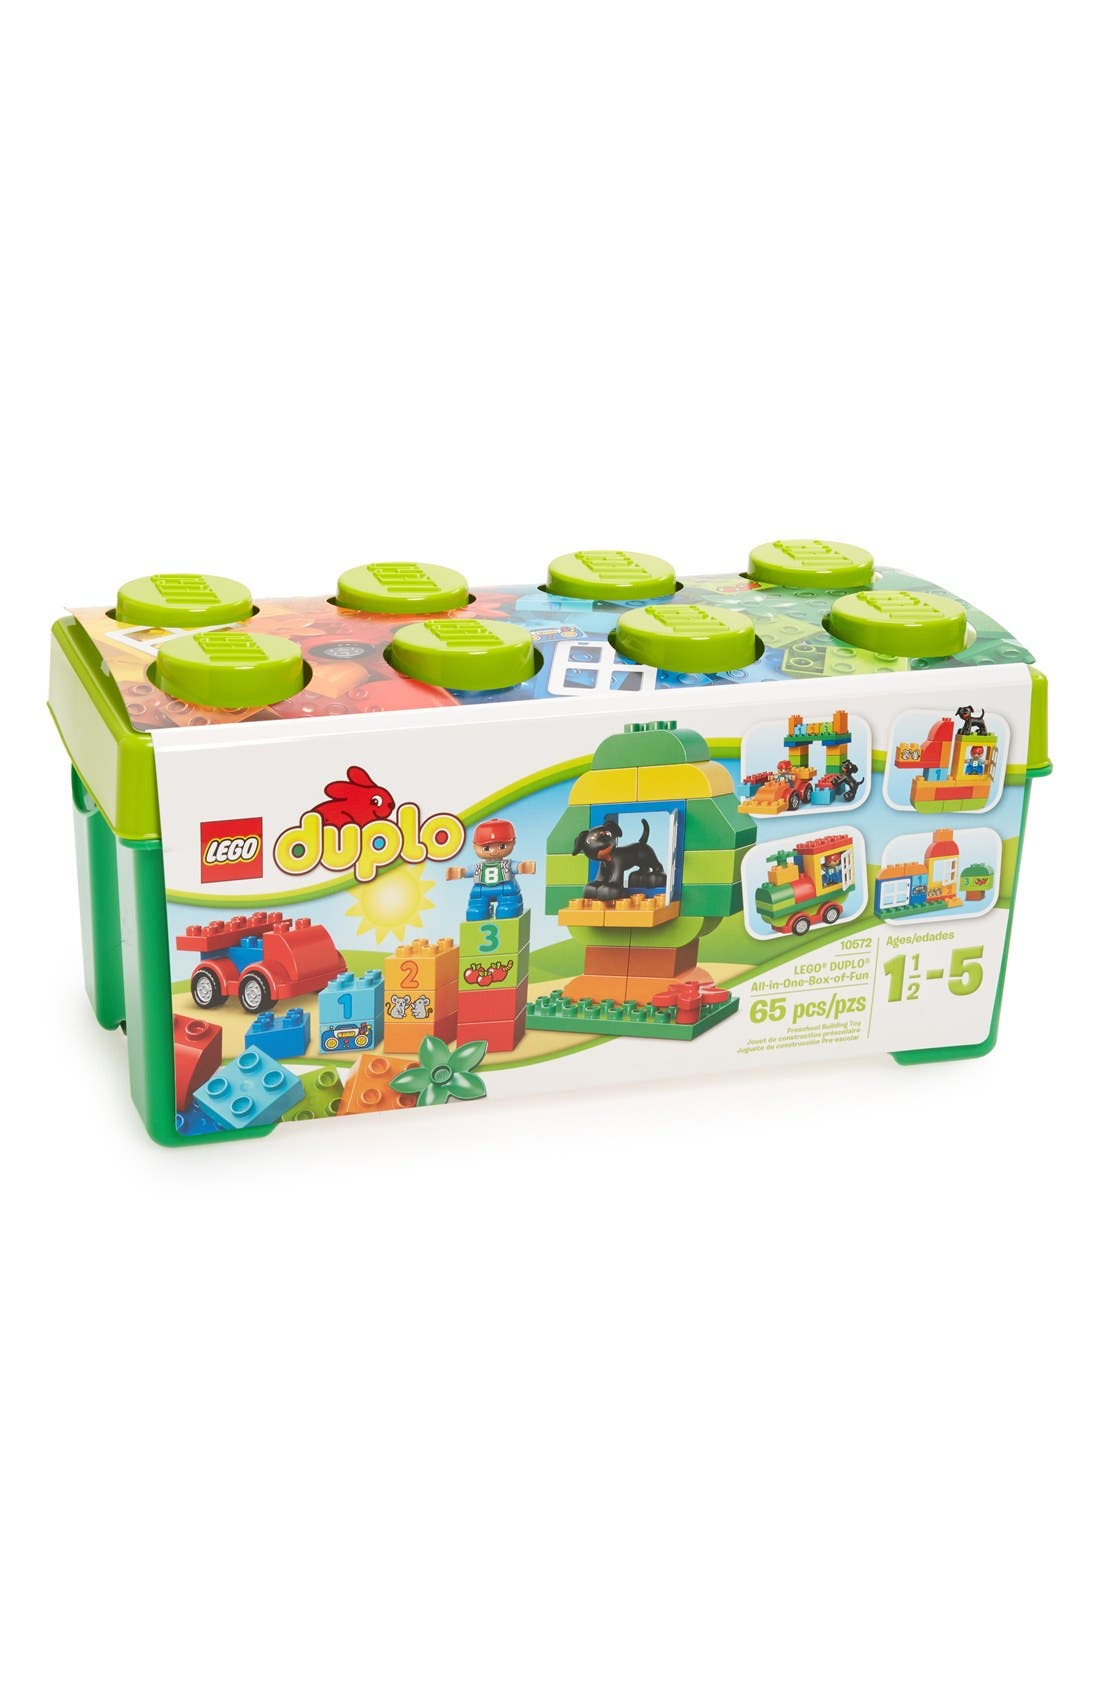 Alternate Image 1 Selected - LEGO® DUPLO® All-in-One Box of Fun - 10572